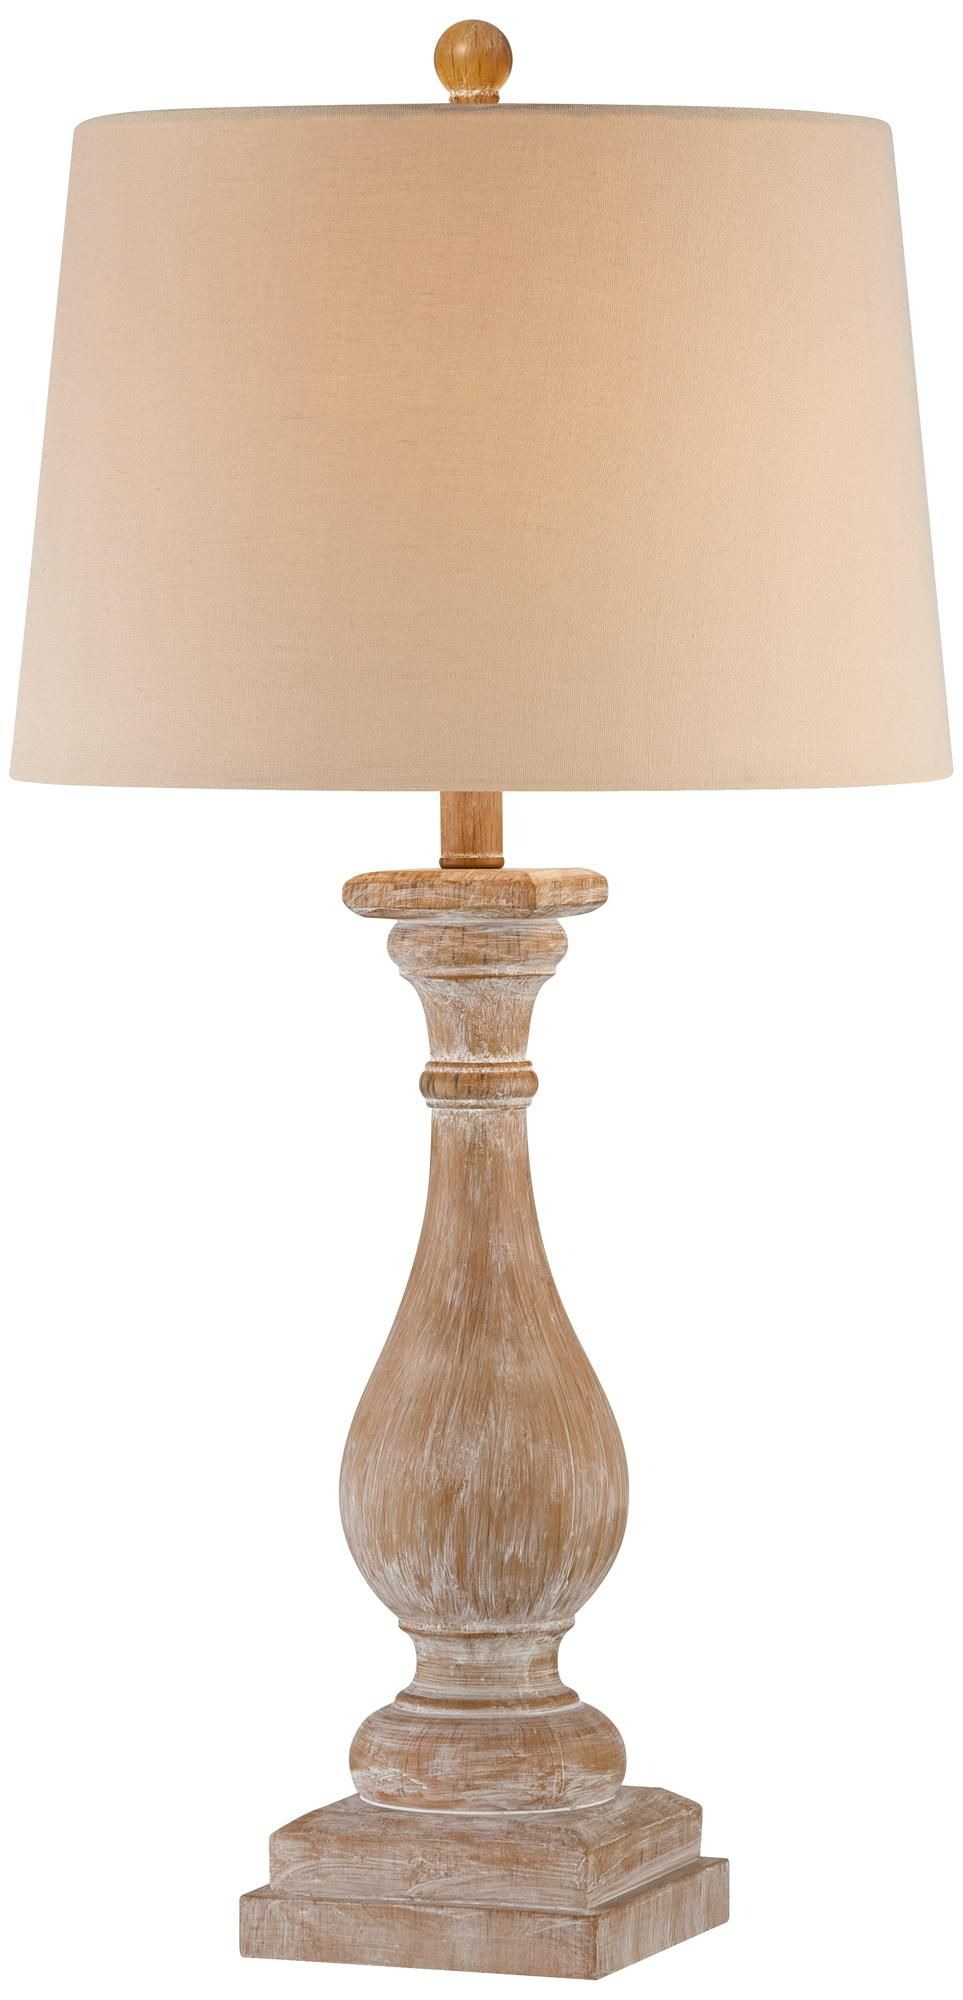 Worn Wood Candlestick Table Lamp | LampsPlus.com | Decor ...